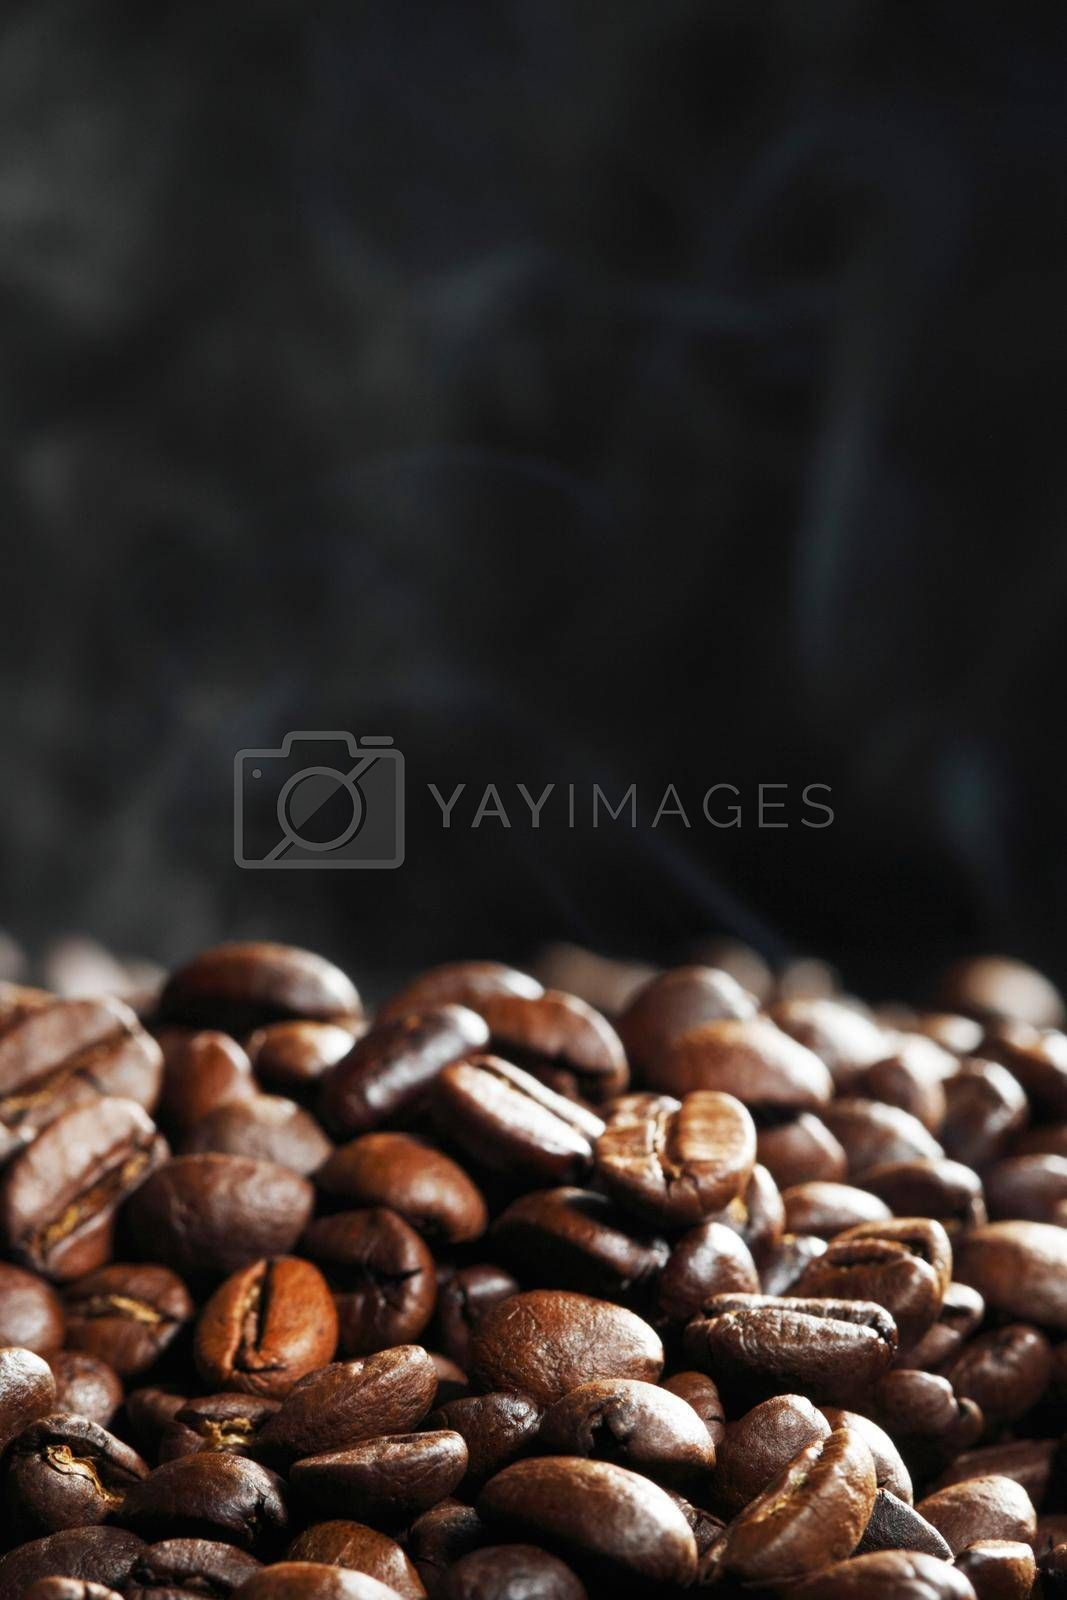 Royalty free image of Hot roasted coffee beans by Yellowj